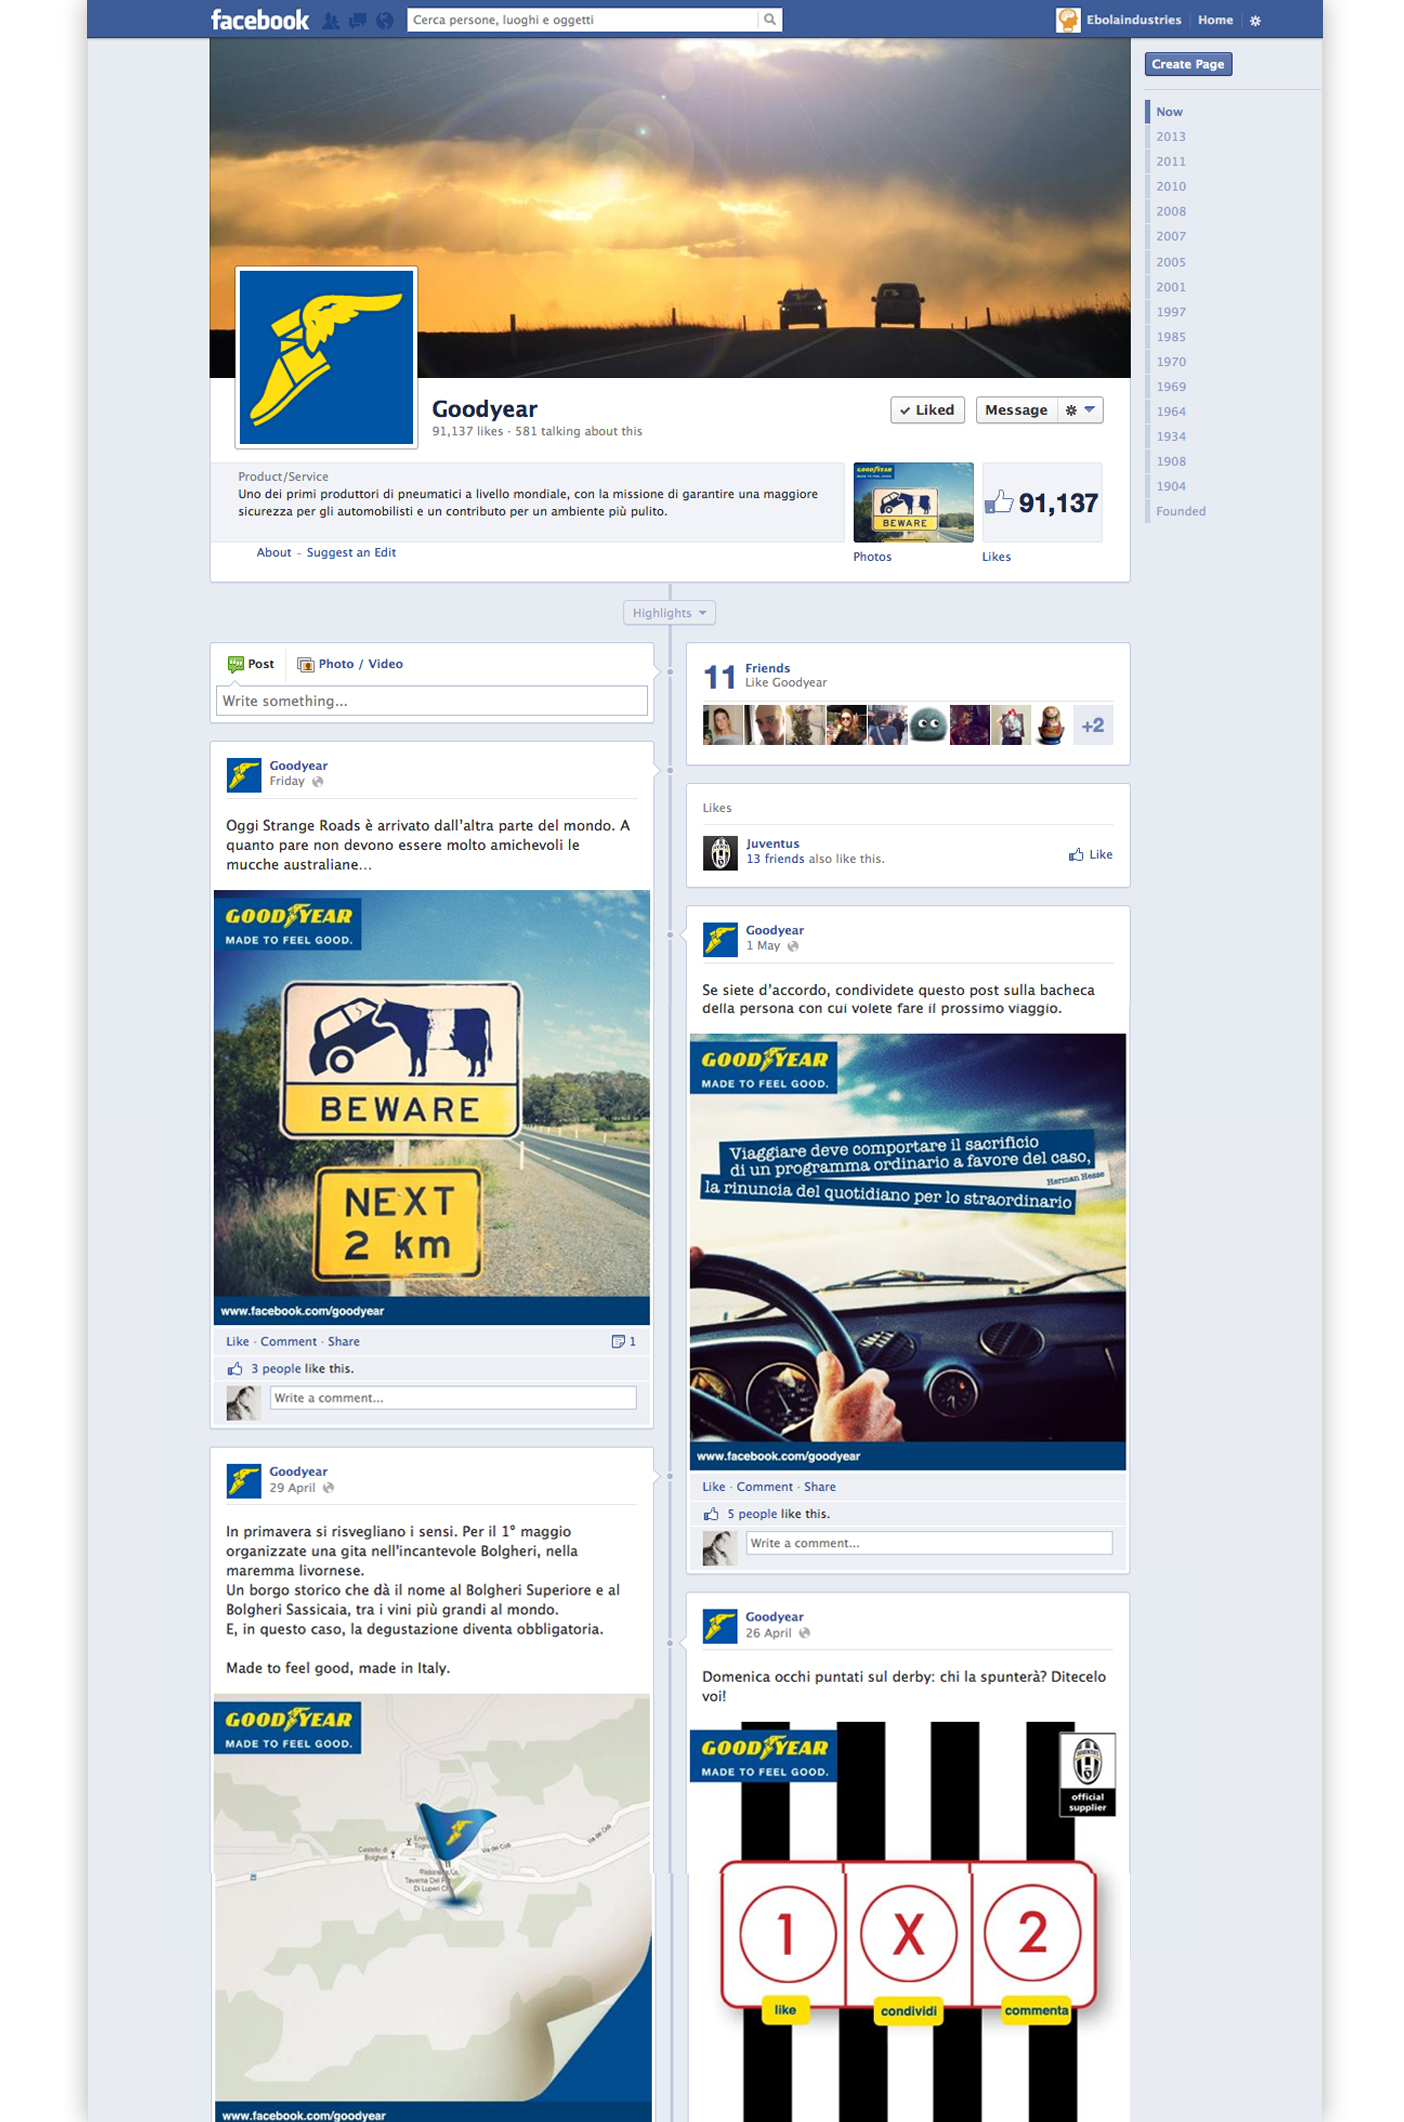 Goodyear Italia - FB fan page.